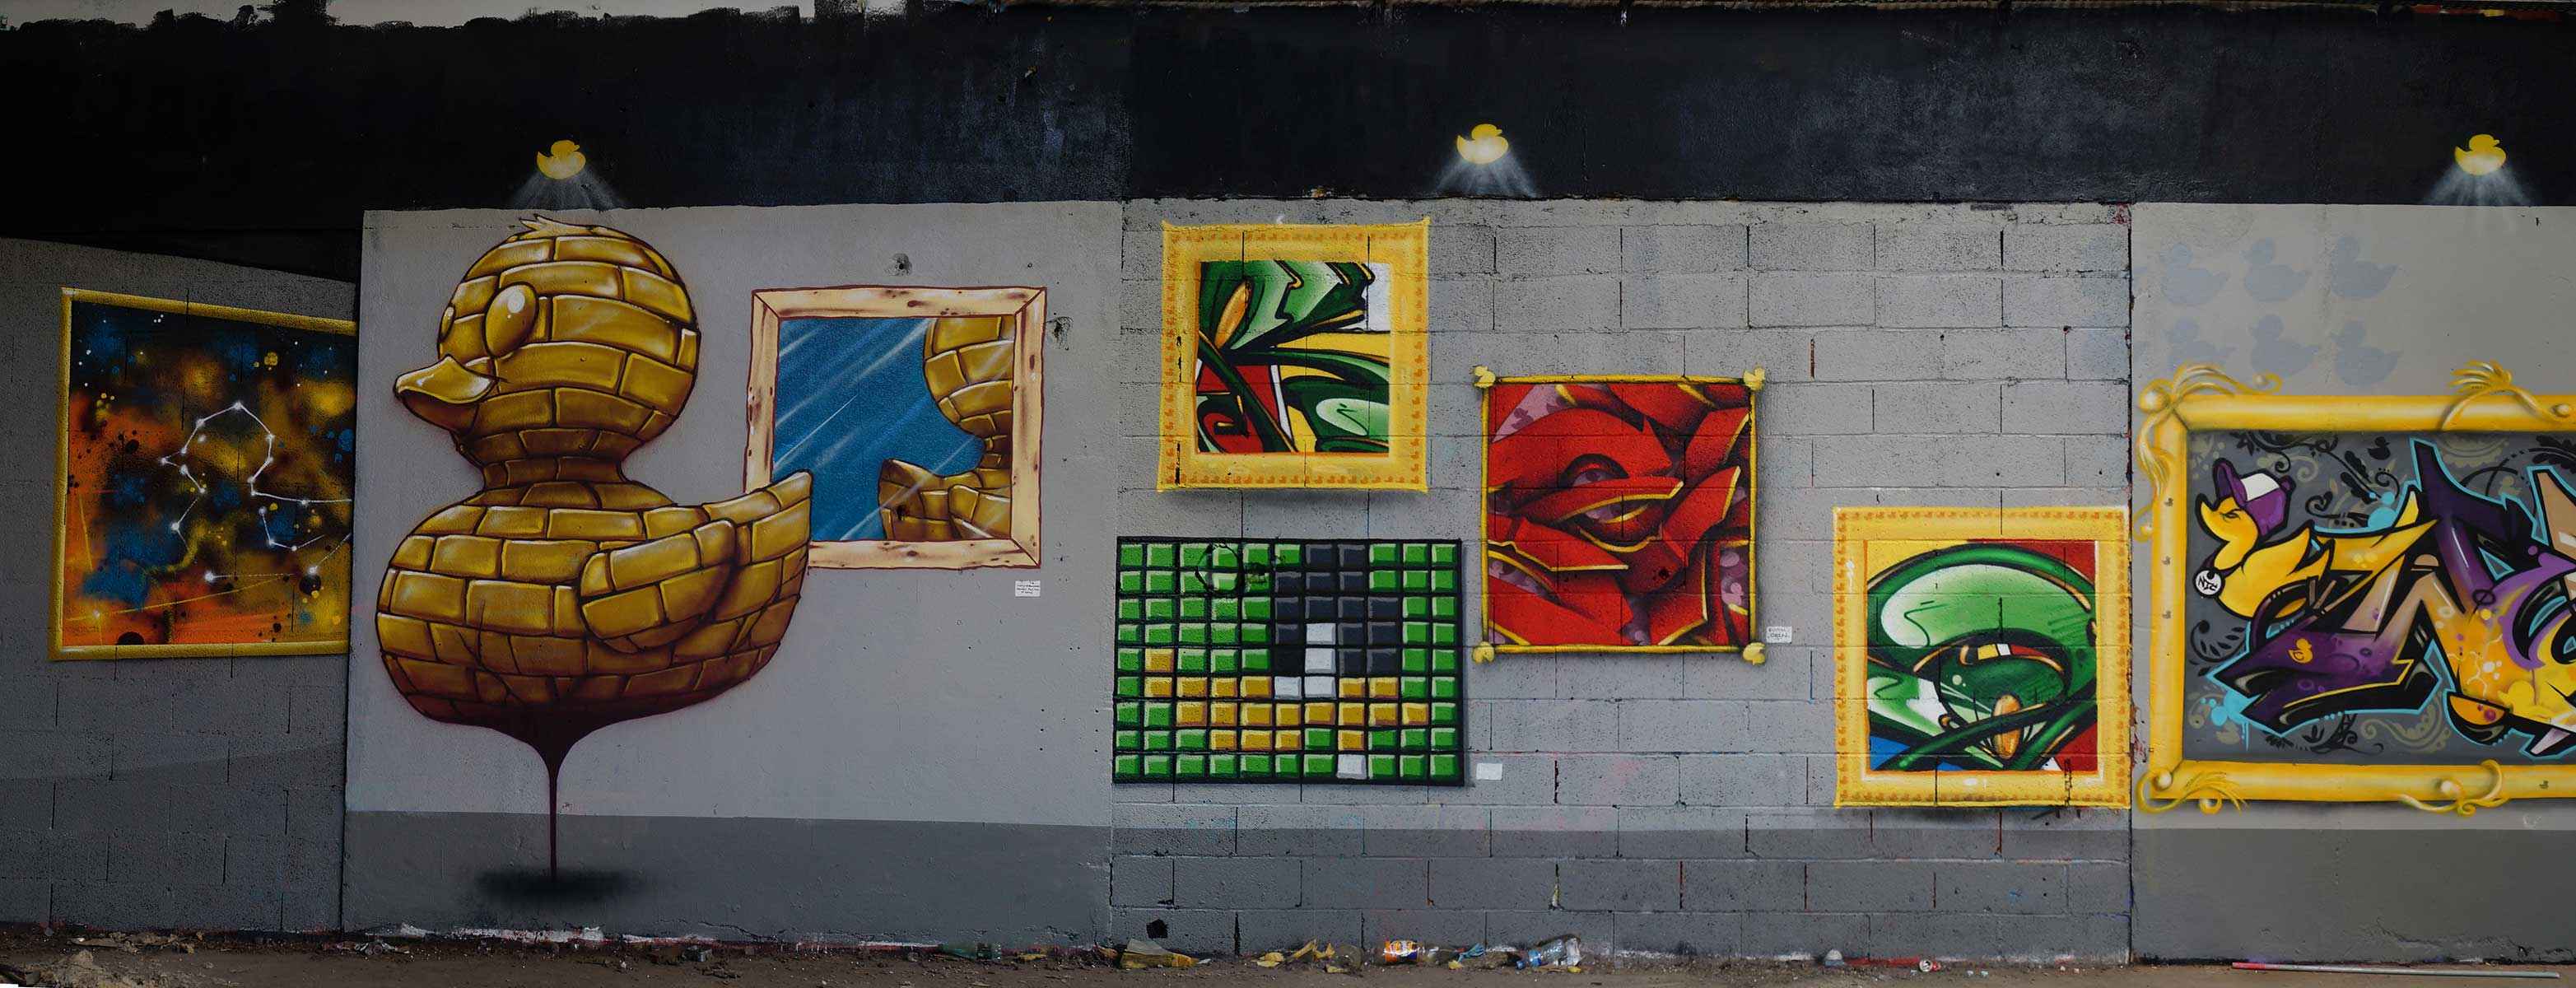 coincoin-museum-toulouse-graffiti_2